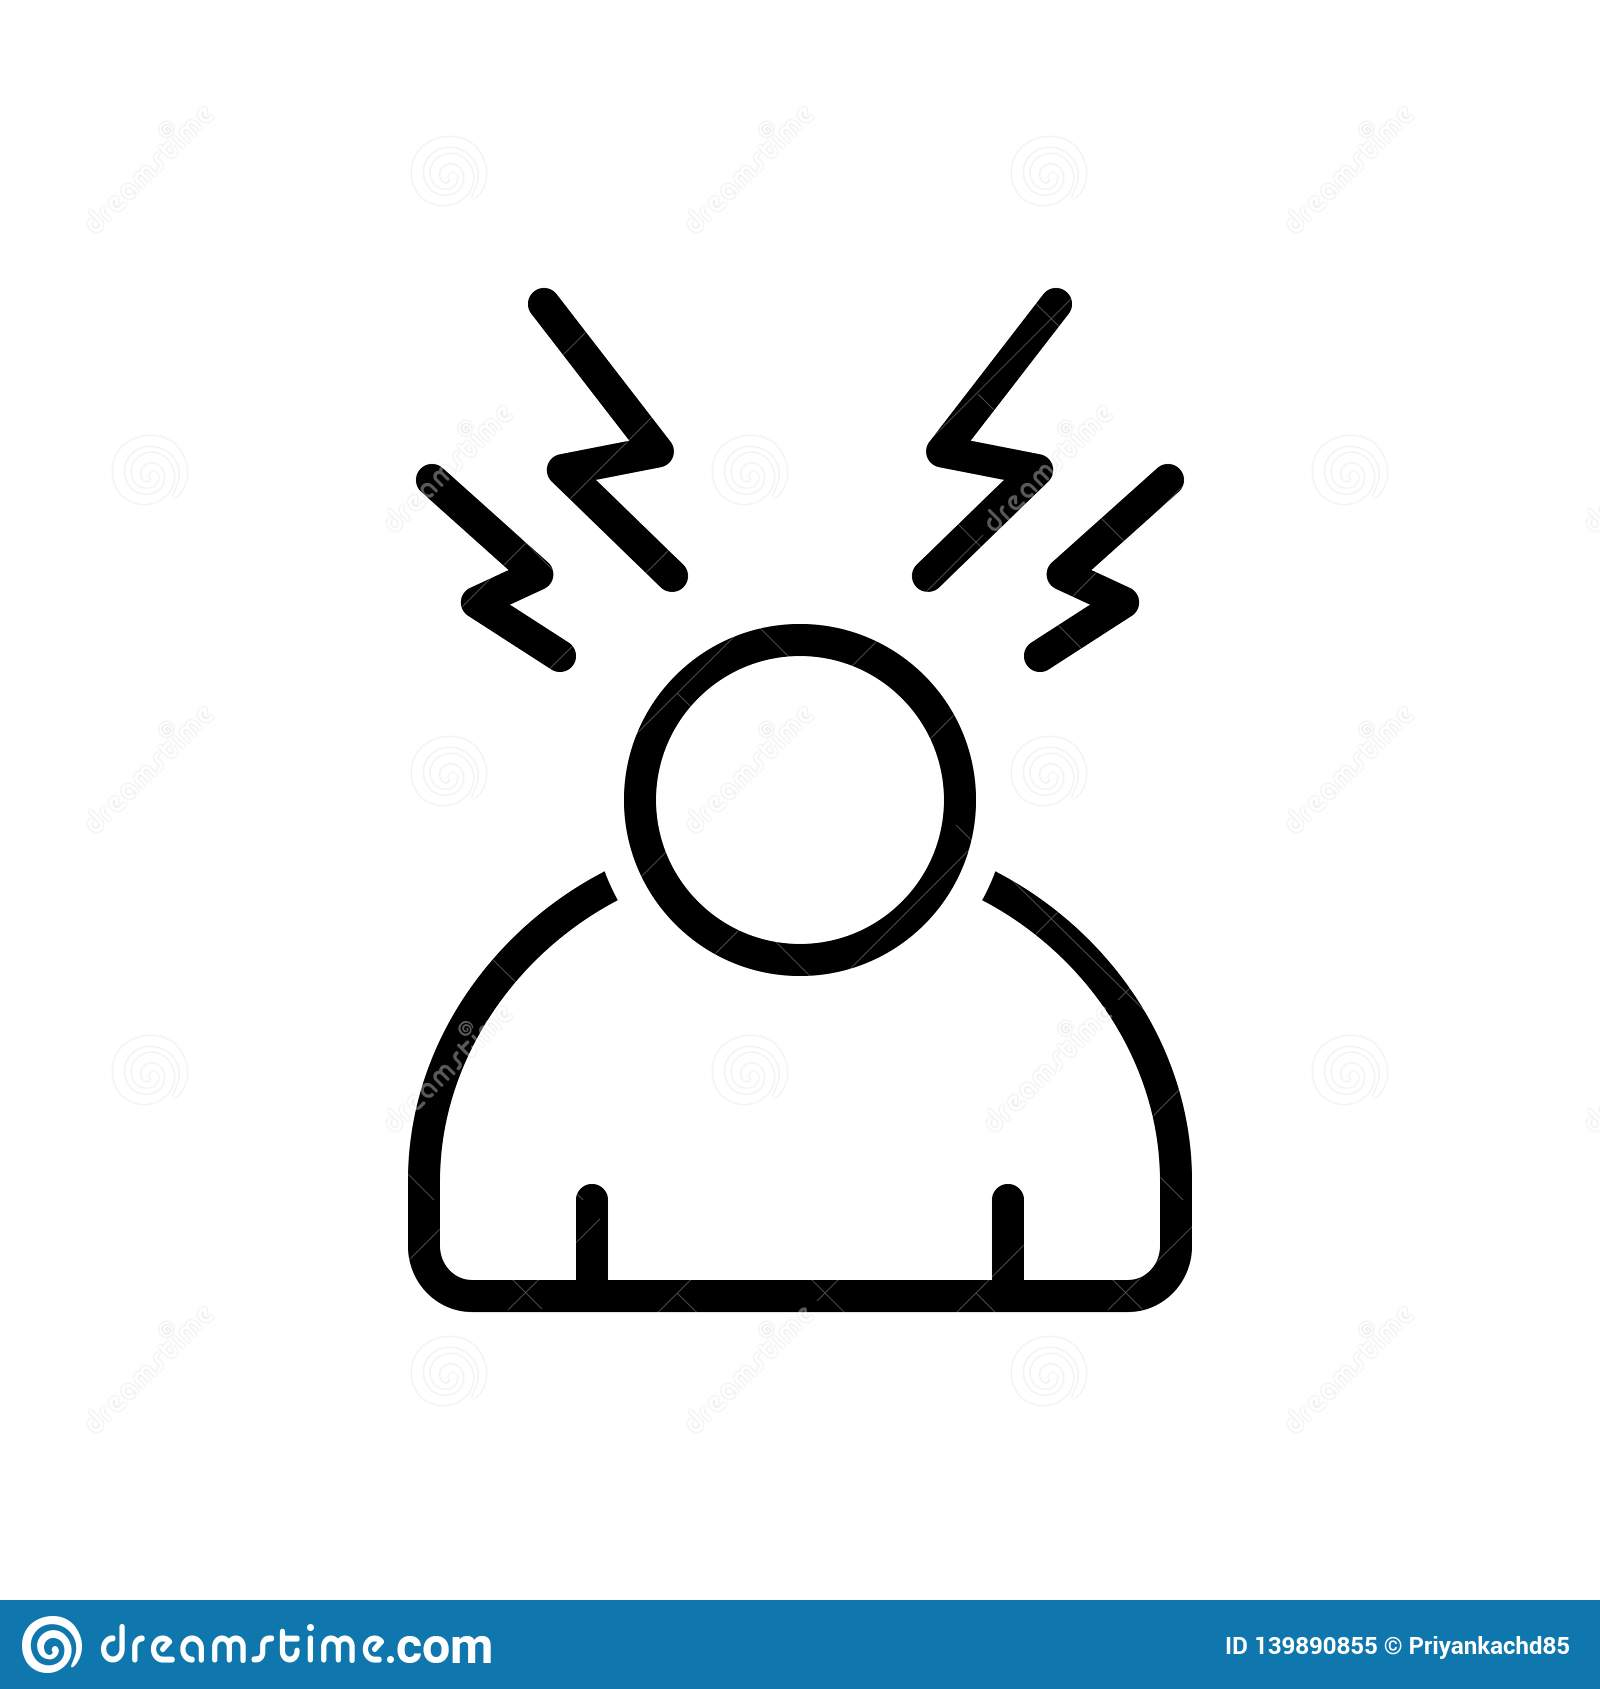 Black line icon for Stress, worried and pressure